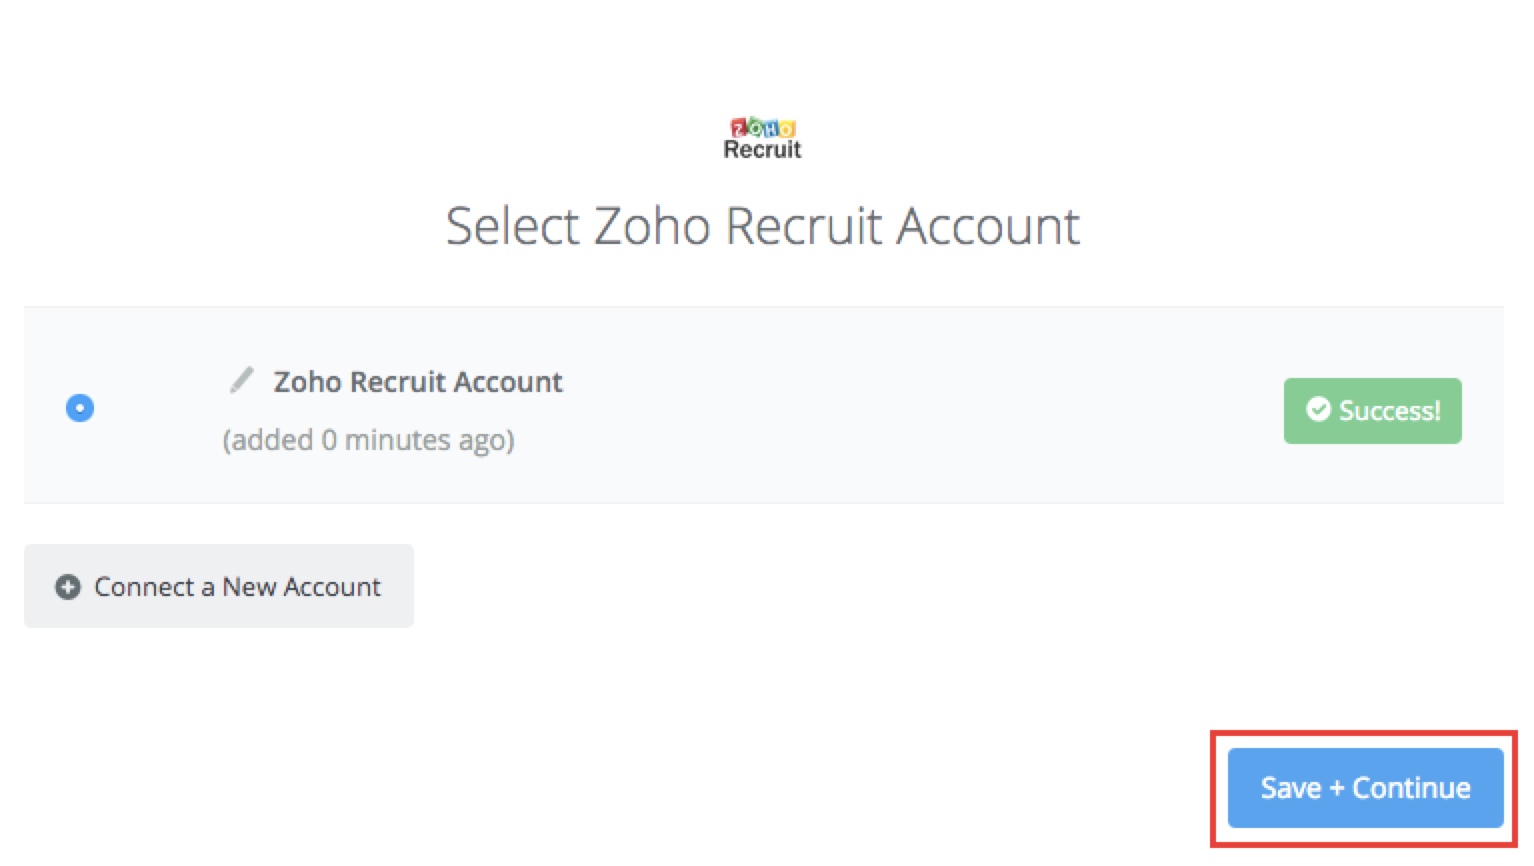 Zoho Recruit connection successfull